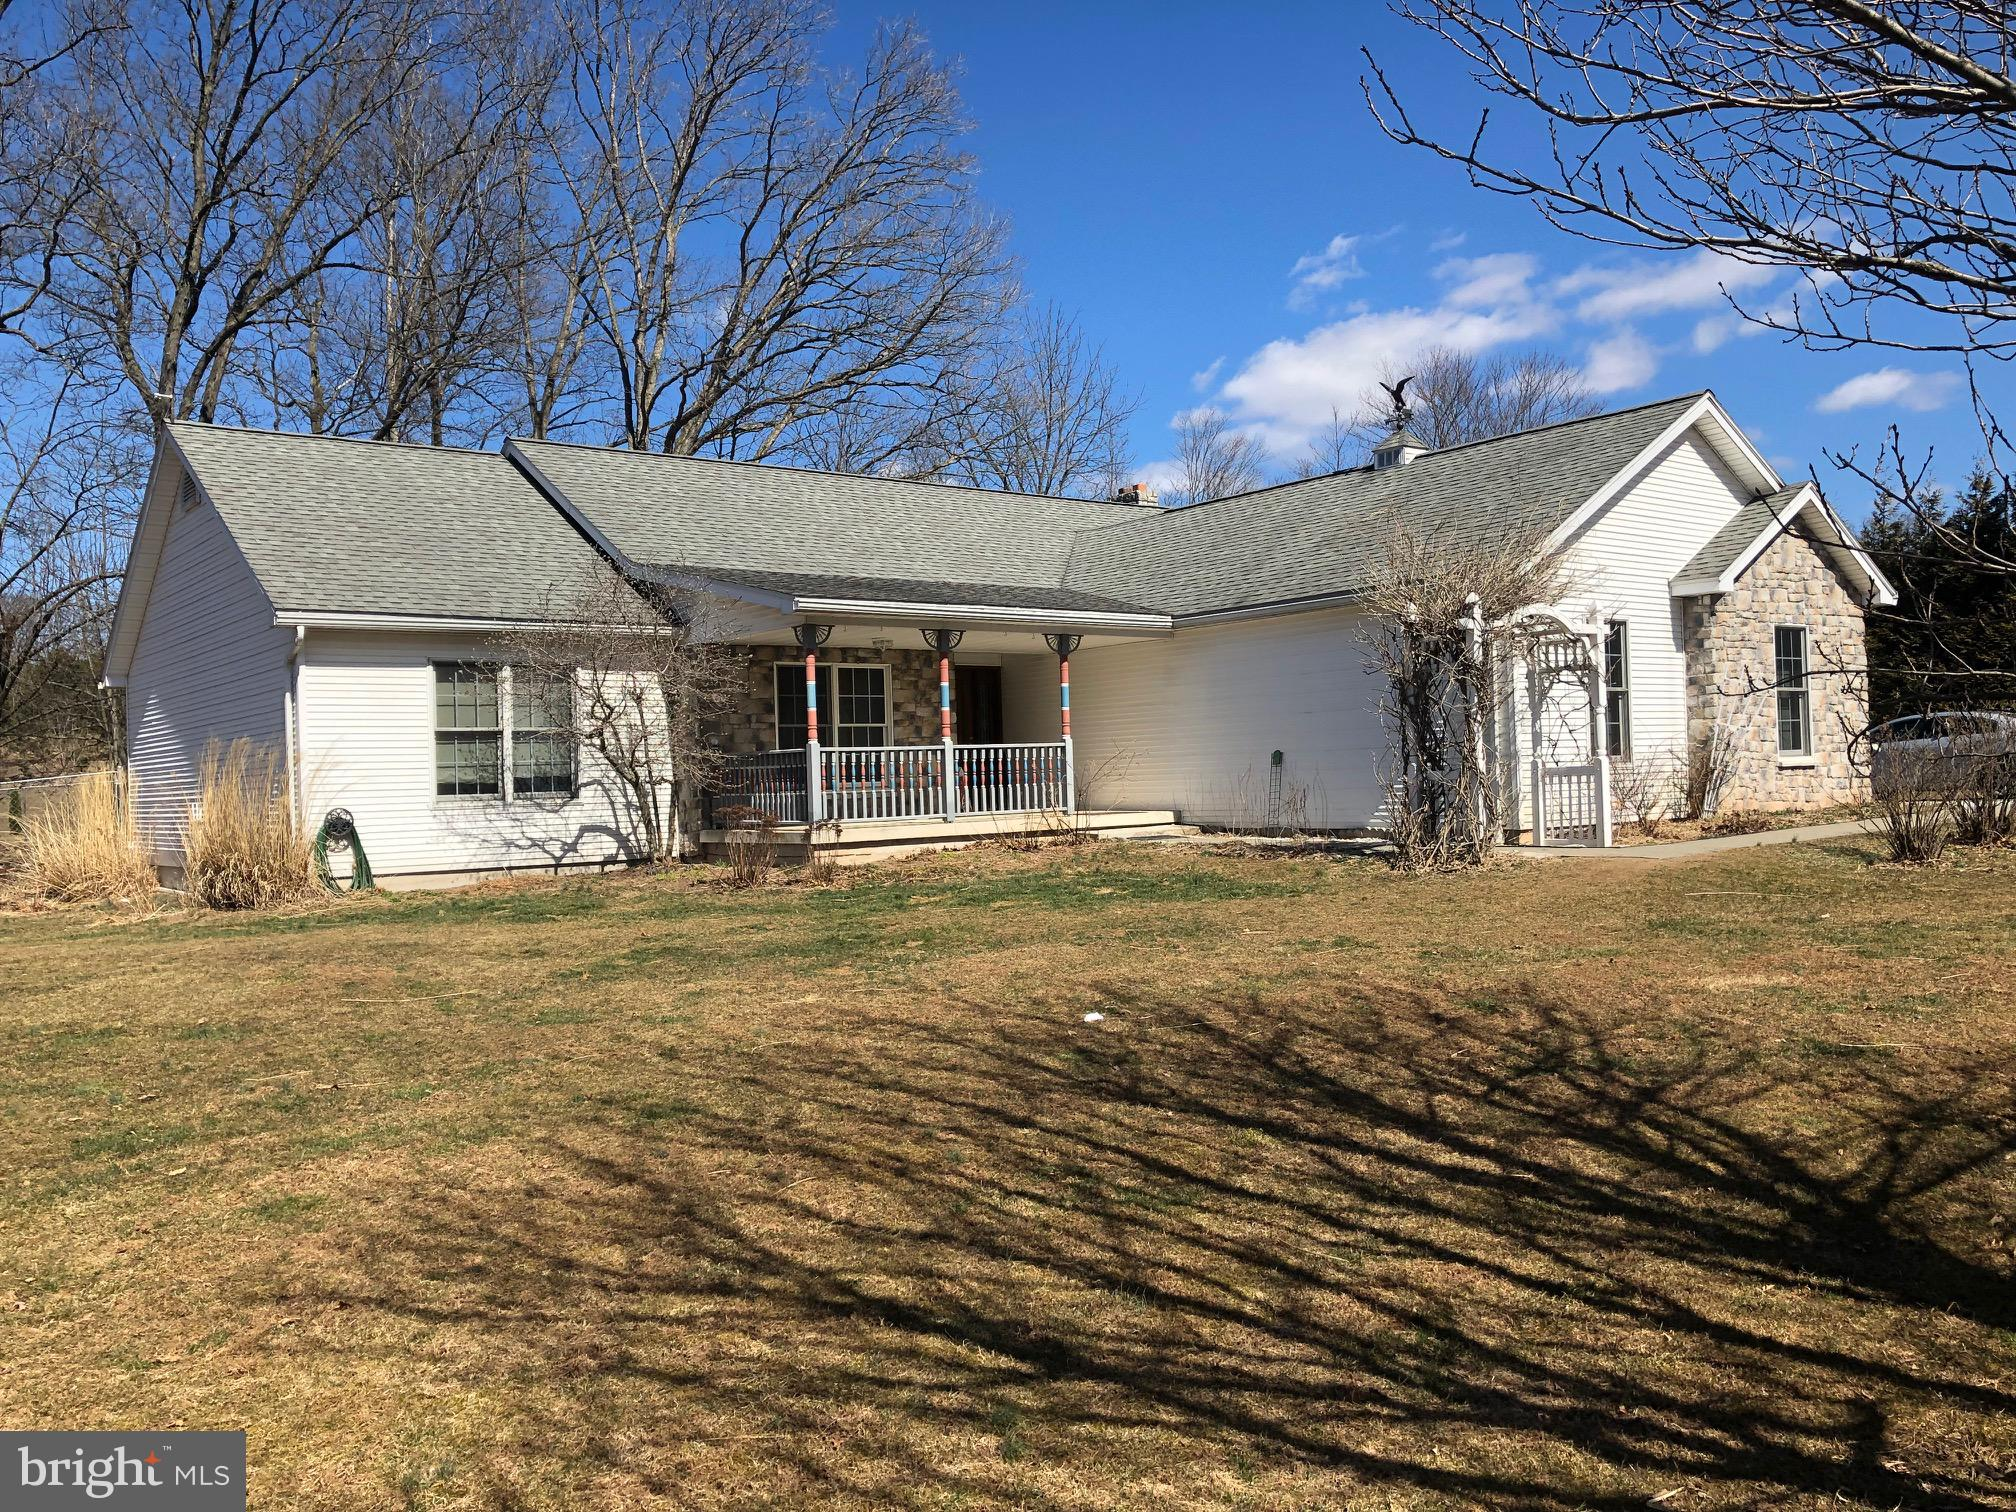 41 WILD CHERRY ROAD, SCHUYLKILL HAVEN, PA 17972